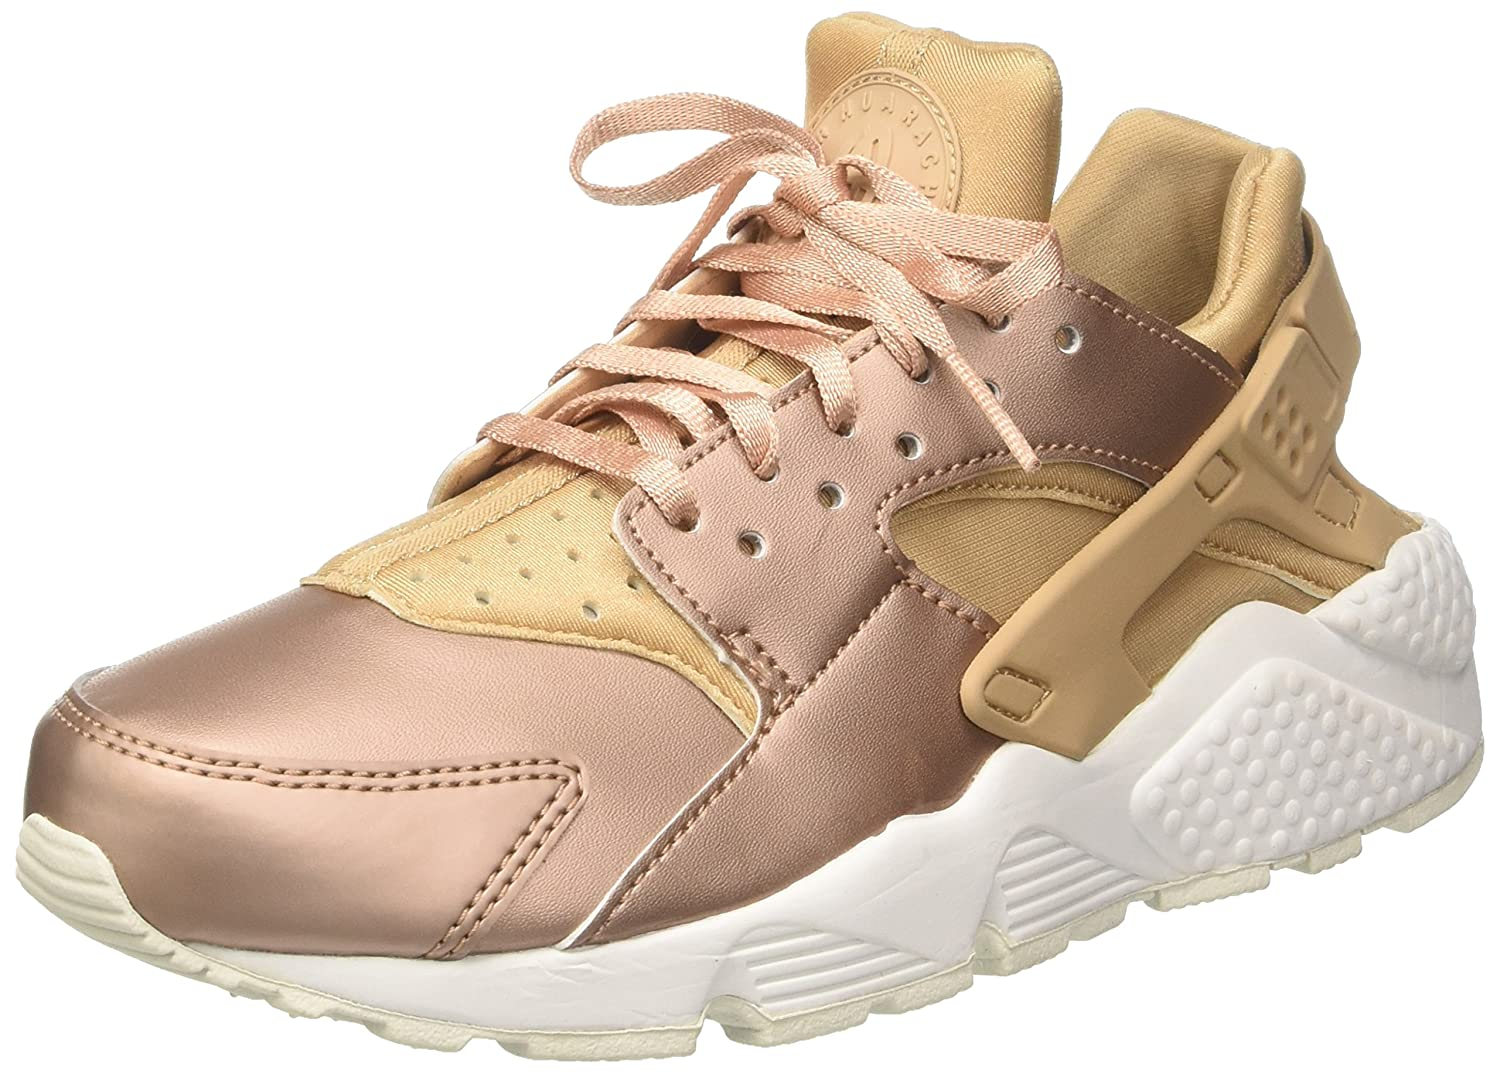 Elemental gold   Metallic Red Bronze 7 B(M) US Nike Women's Air Huarache Run LowTop Sneakers